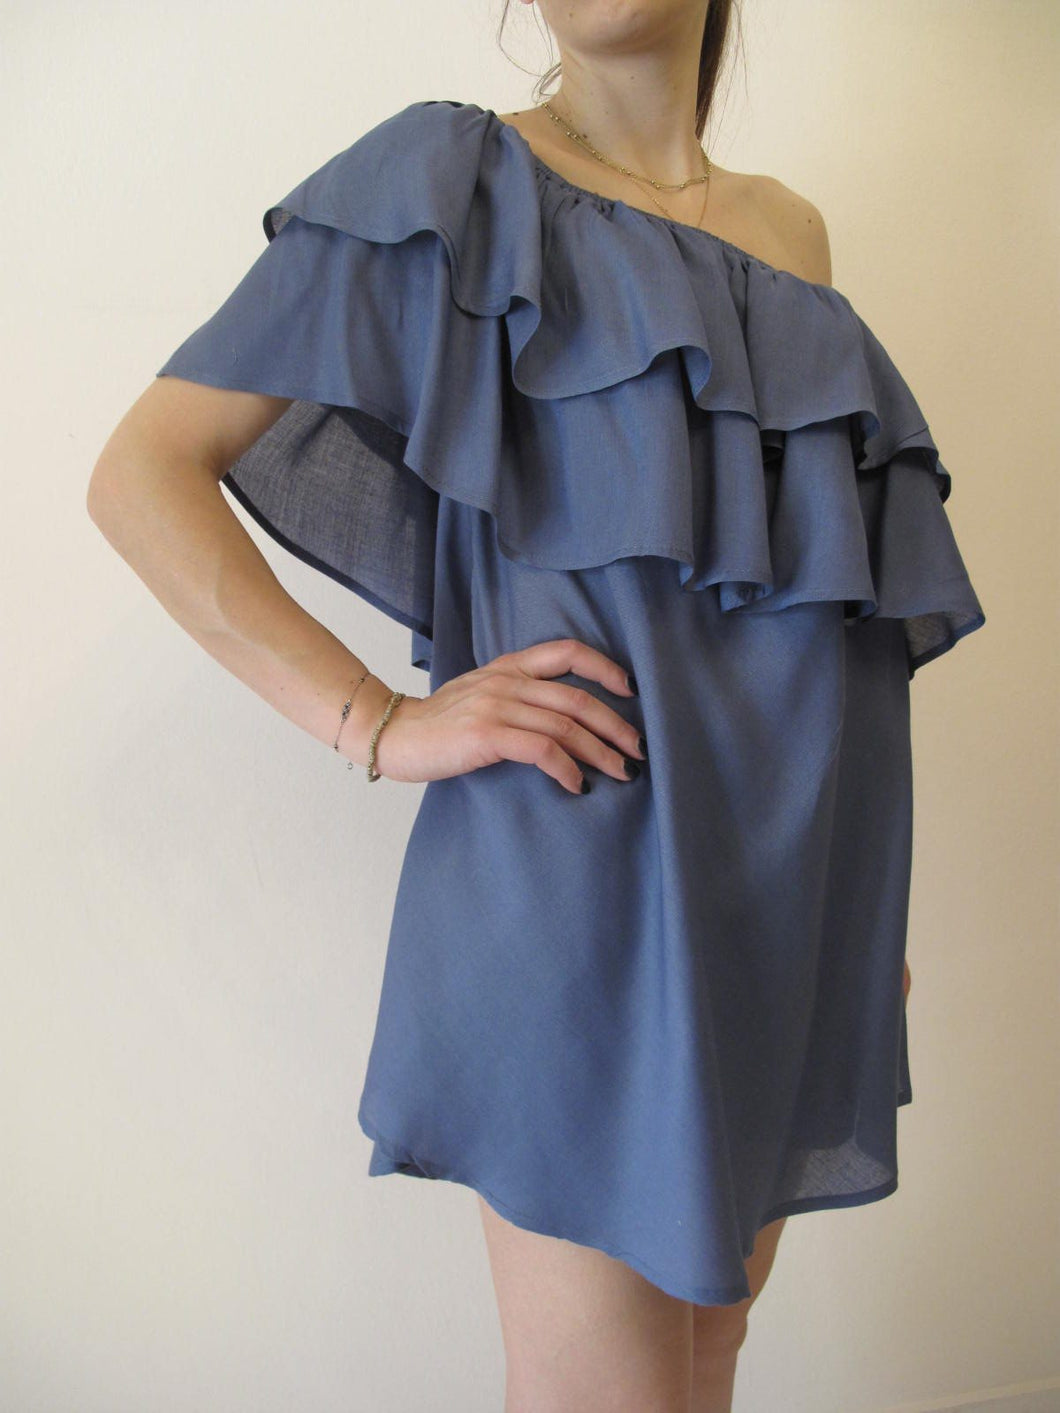 Blouse-Dress with ruffles